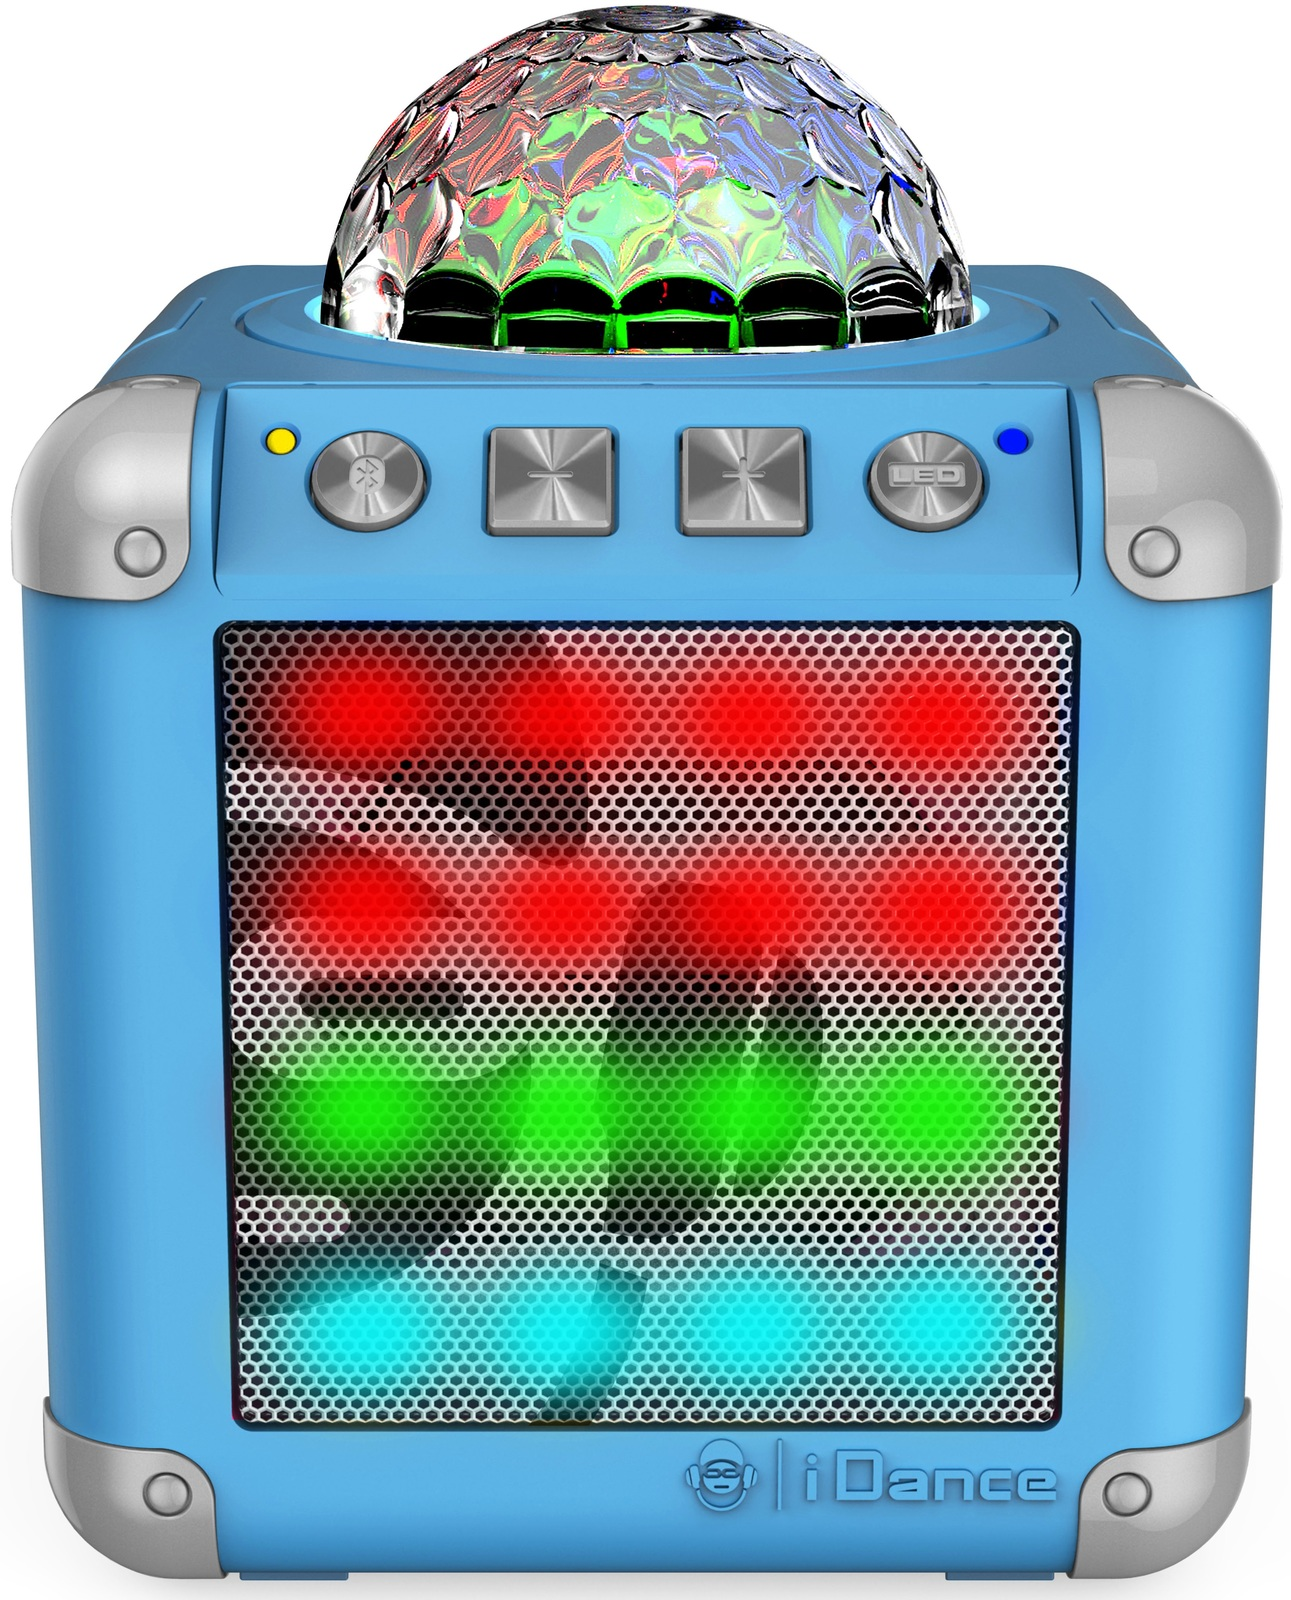 iDance Bluetooth Speaker Party System with Built-in Light Show image